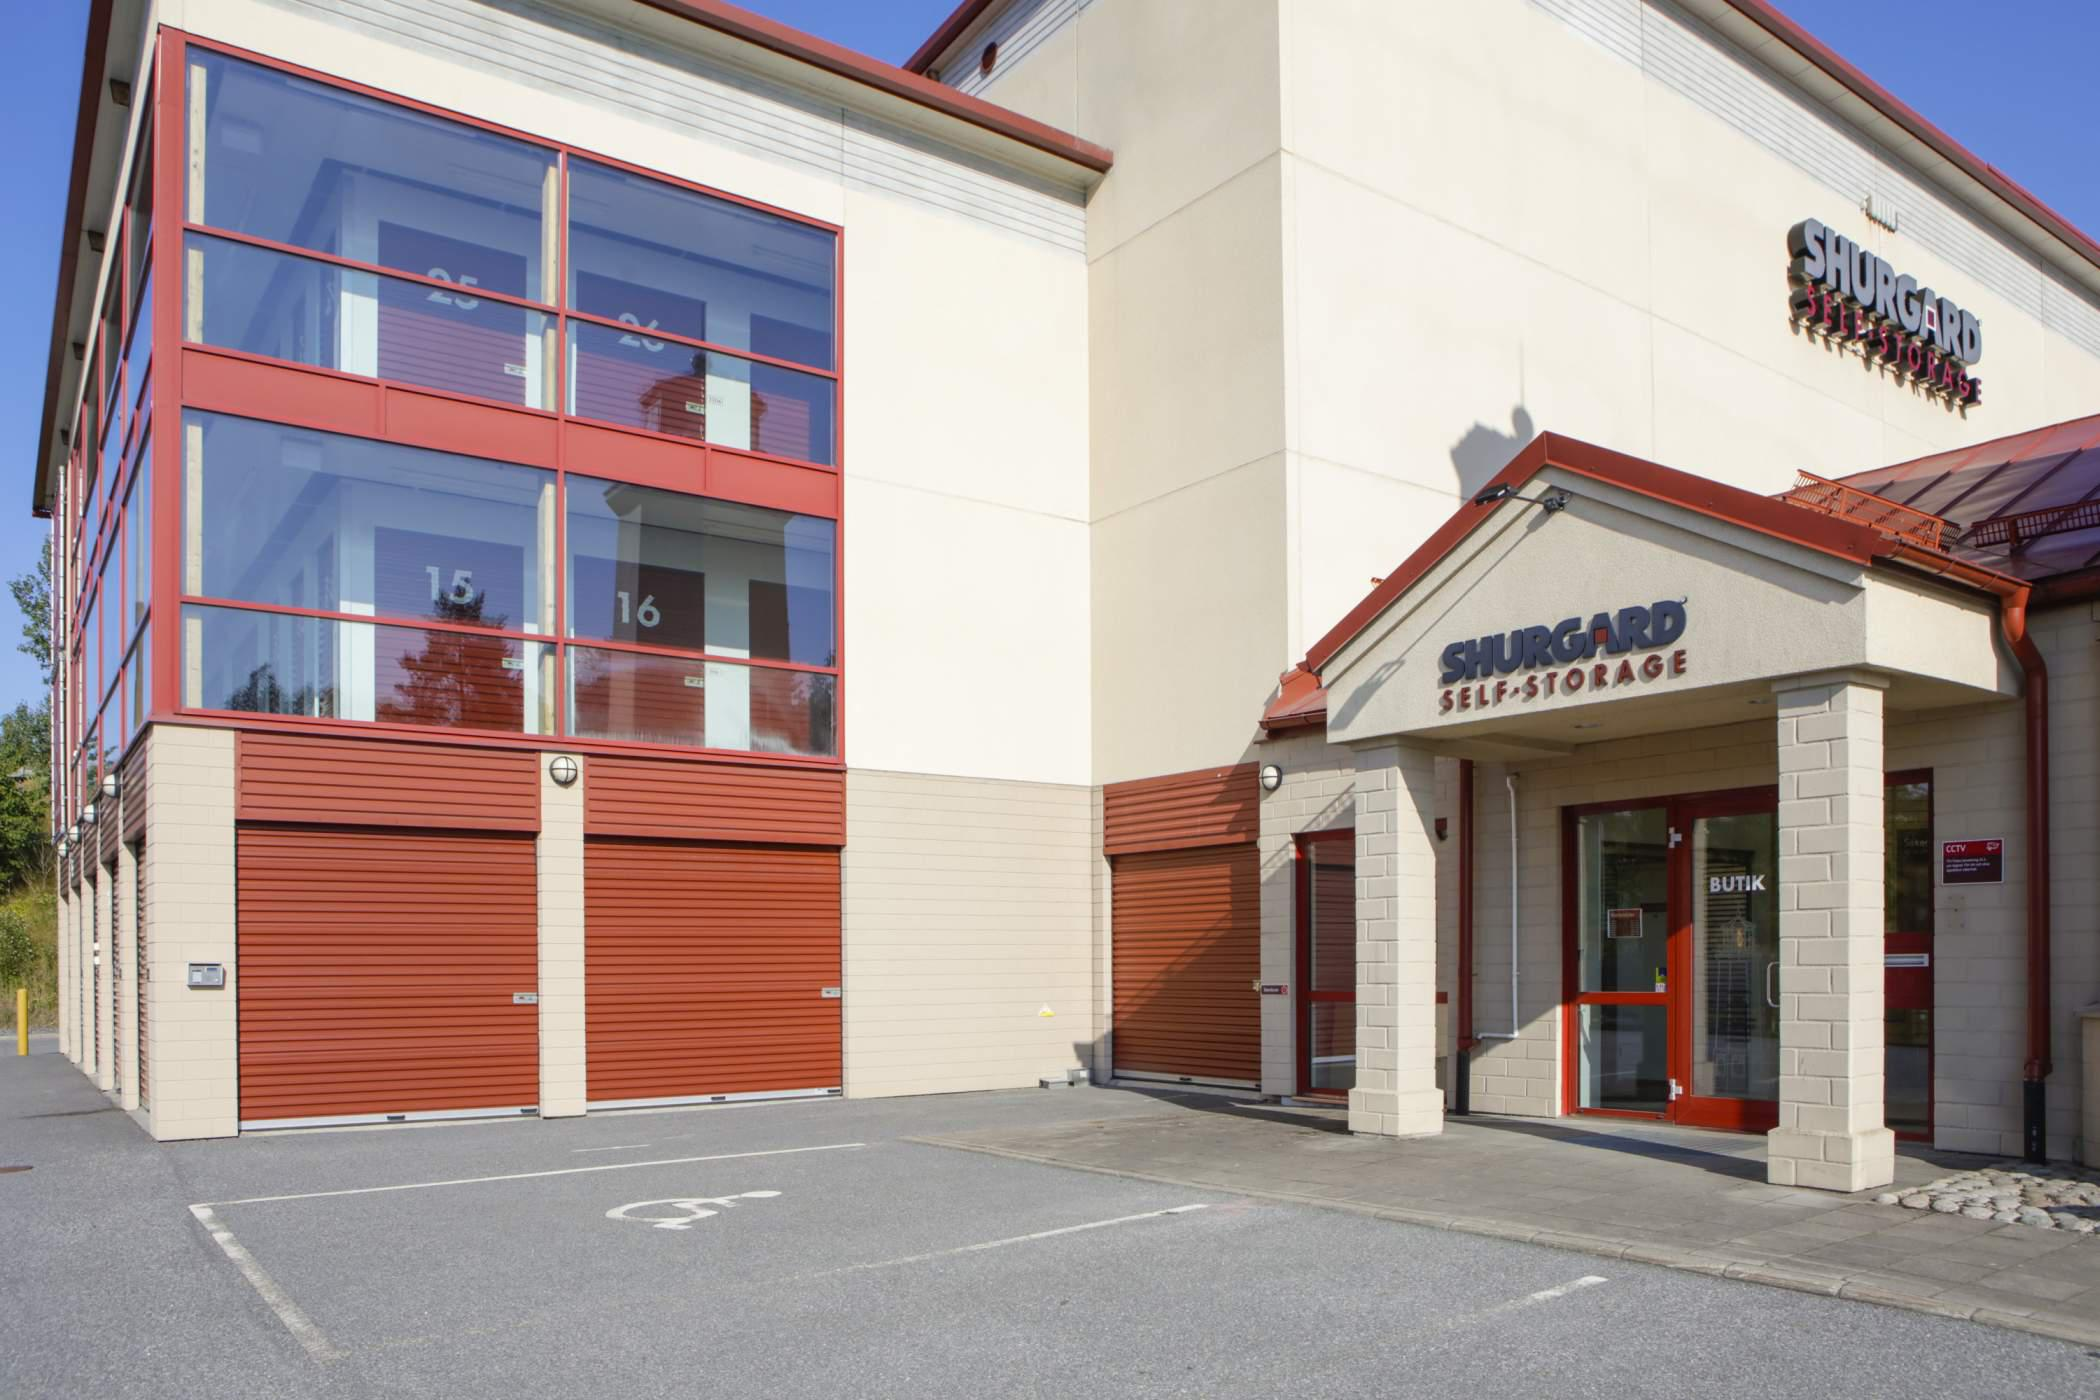 Shurgard Self-Storage Nacka